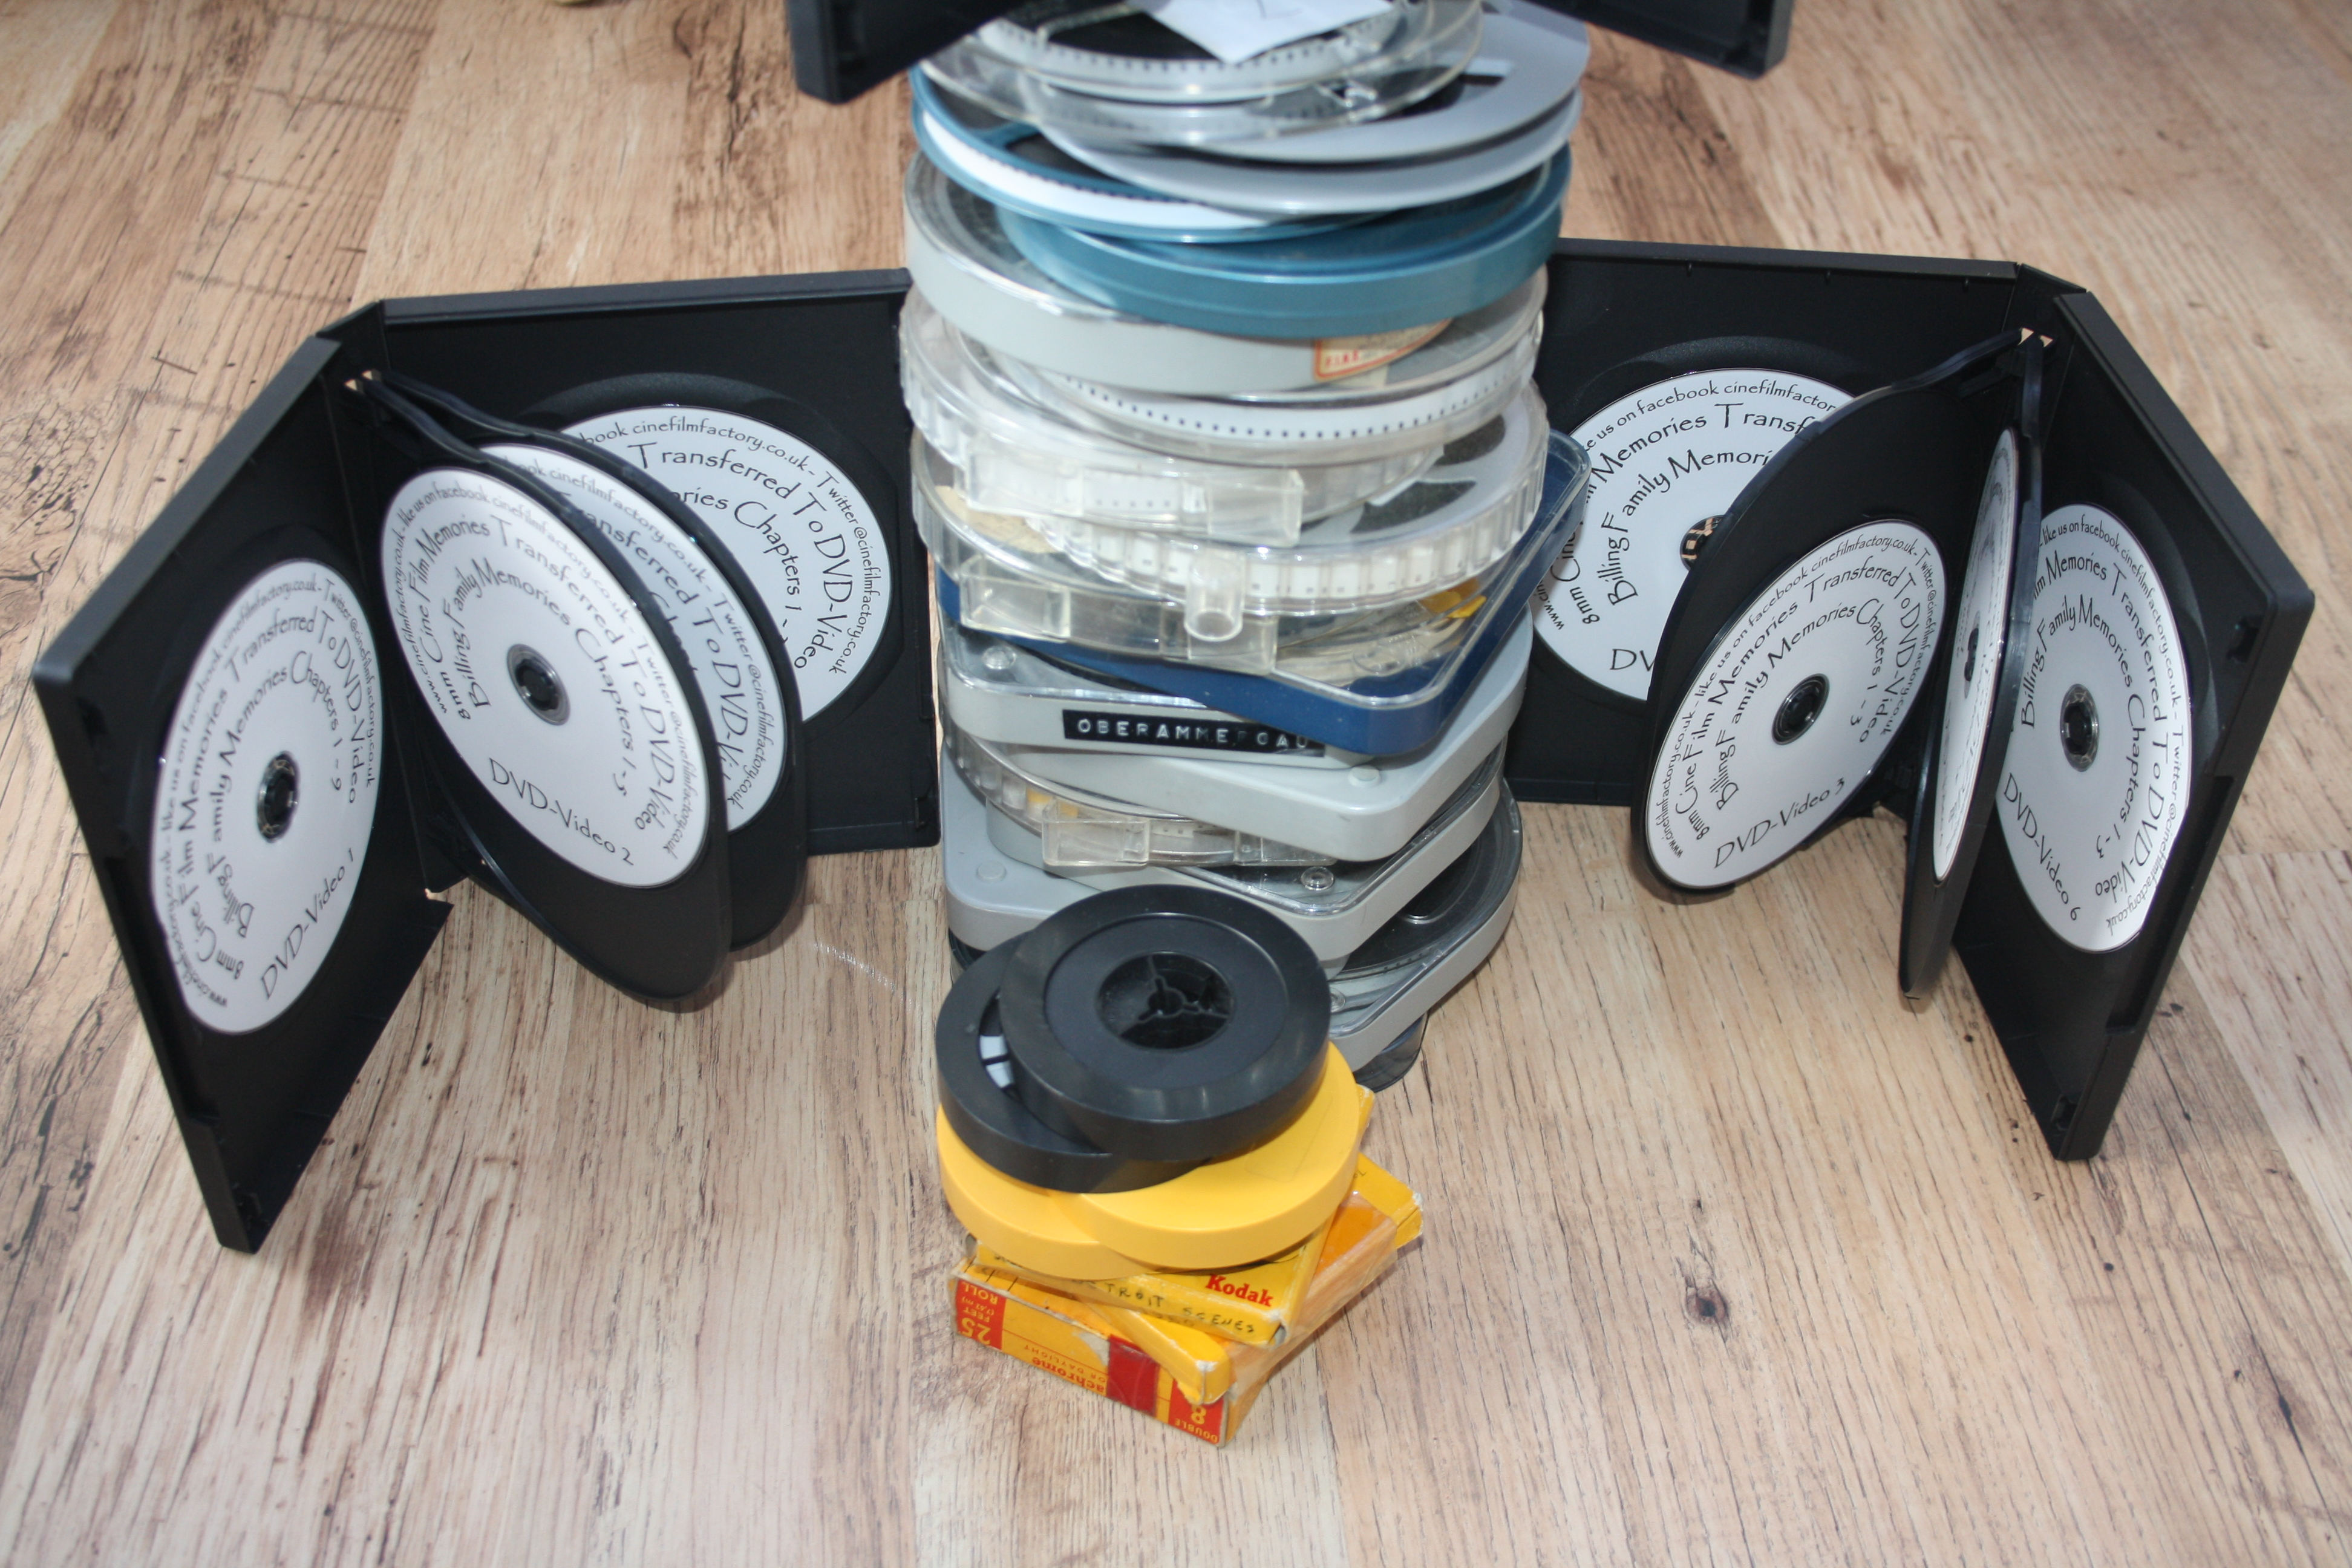 Here is a recent Customer order of 8mm Cine Films transferred to DVDs